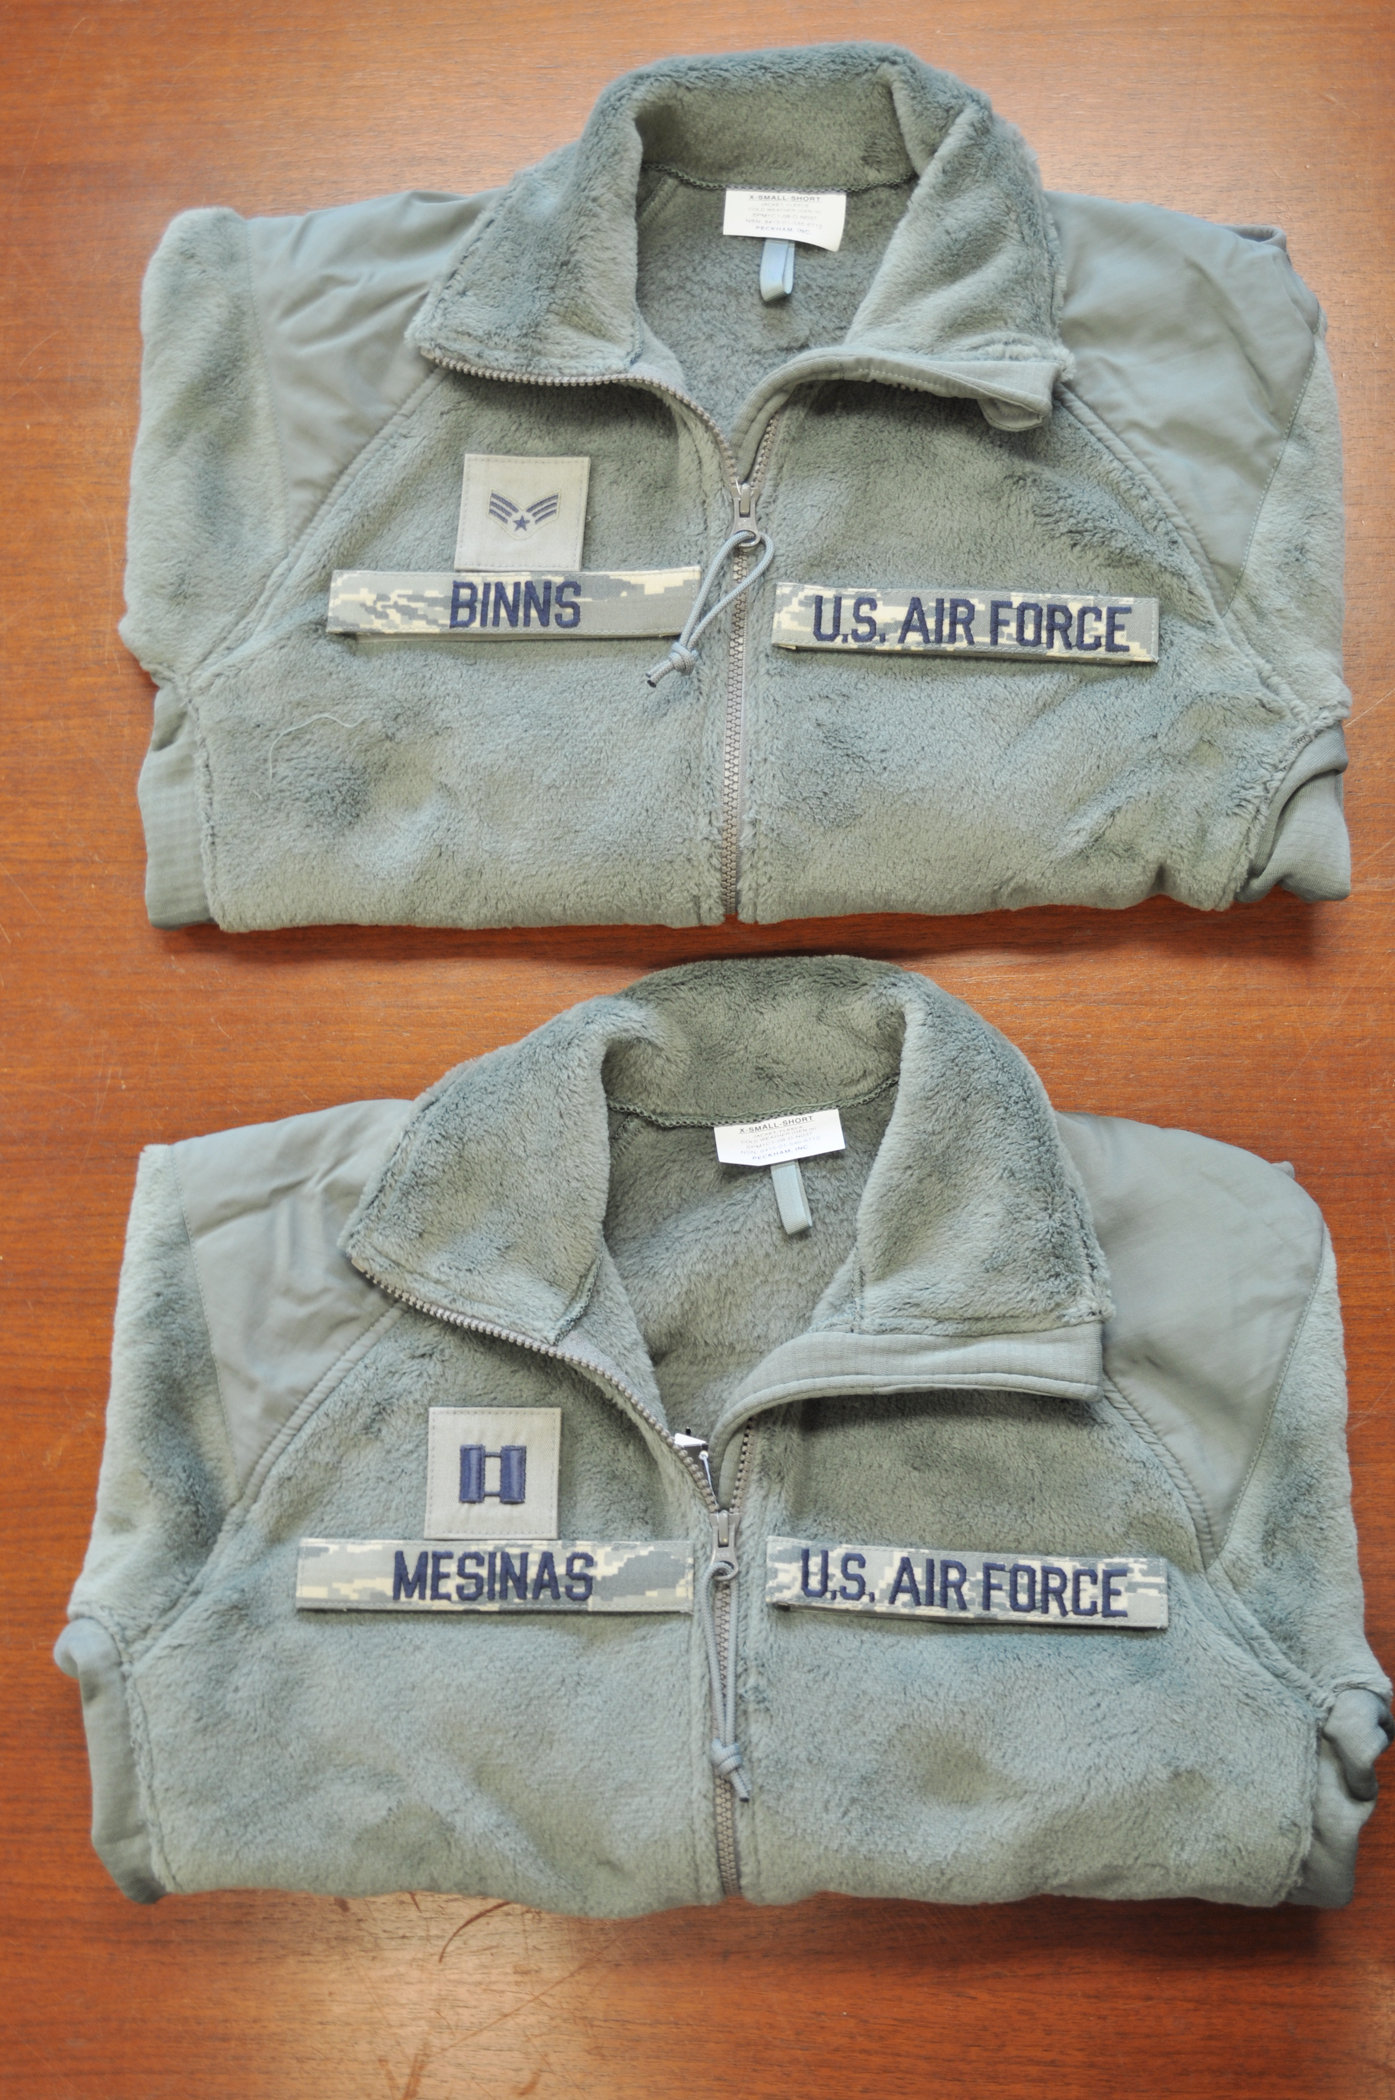 Air Force Officials Release Fleece Wear Policy Gt U S Air